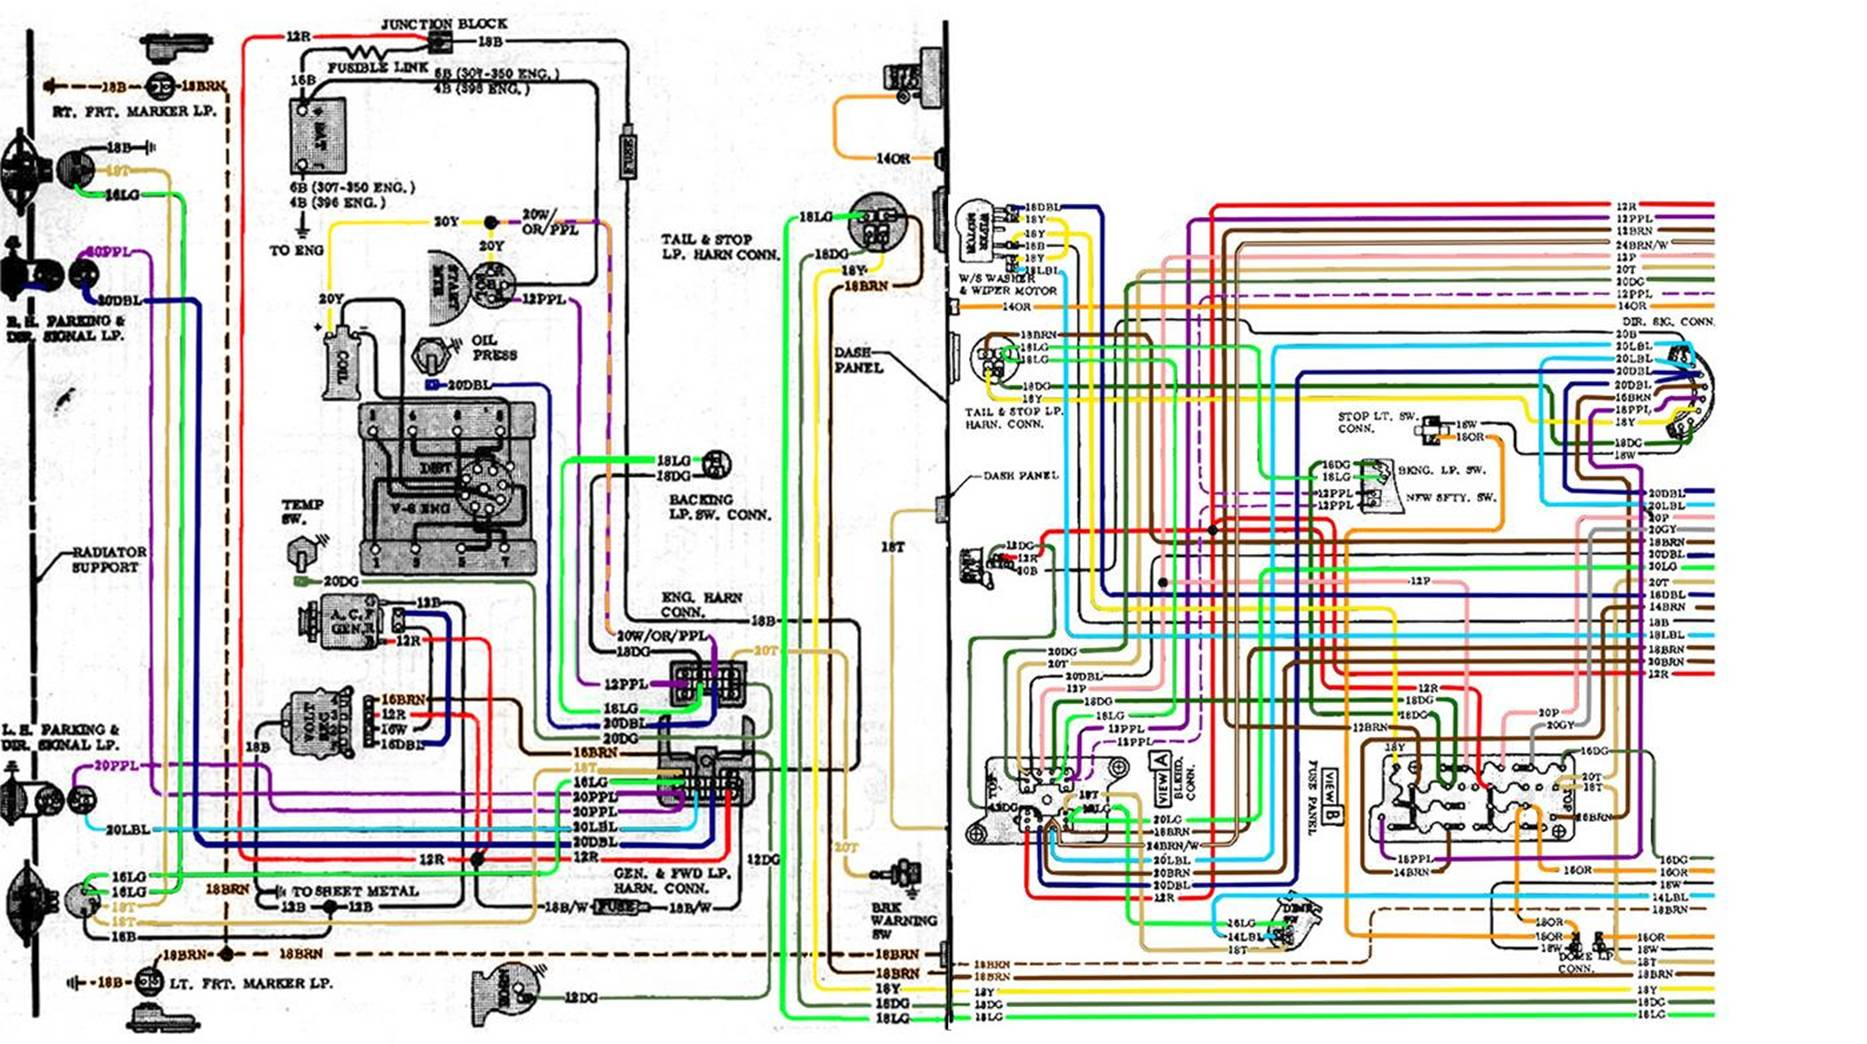 1972 Chevy Distributor Diagram Content Resource Of Wiring 305 Engine For A 1969 Chevrolet C10 Schematic Rh Macro Program Com